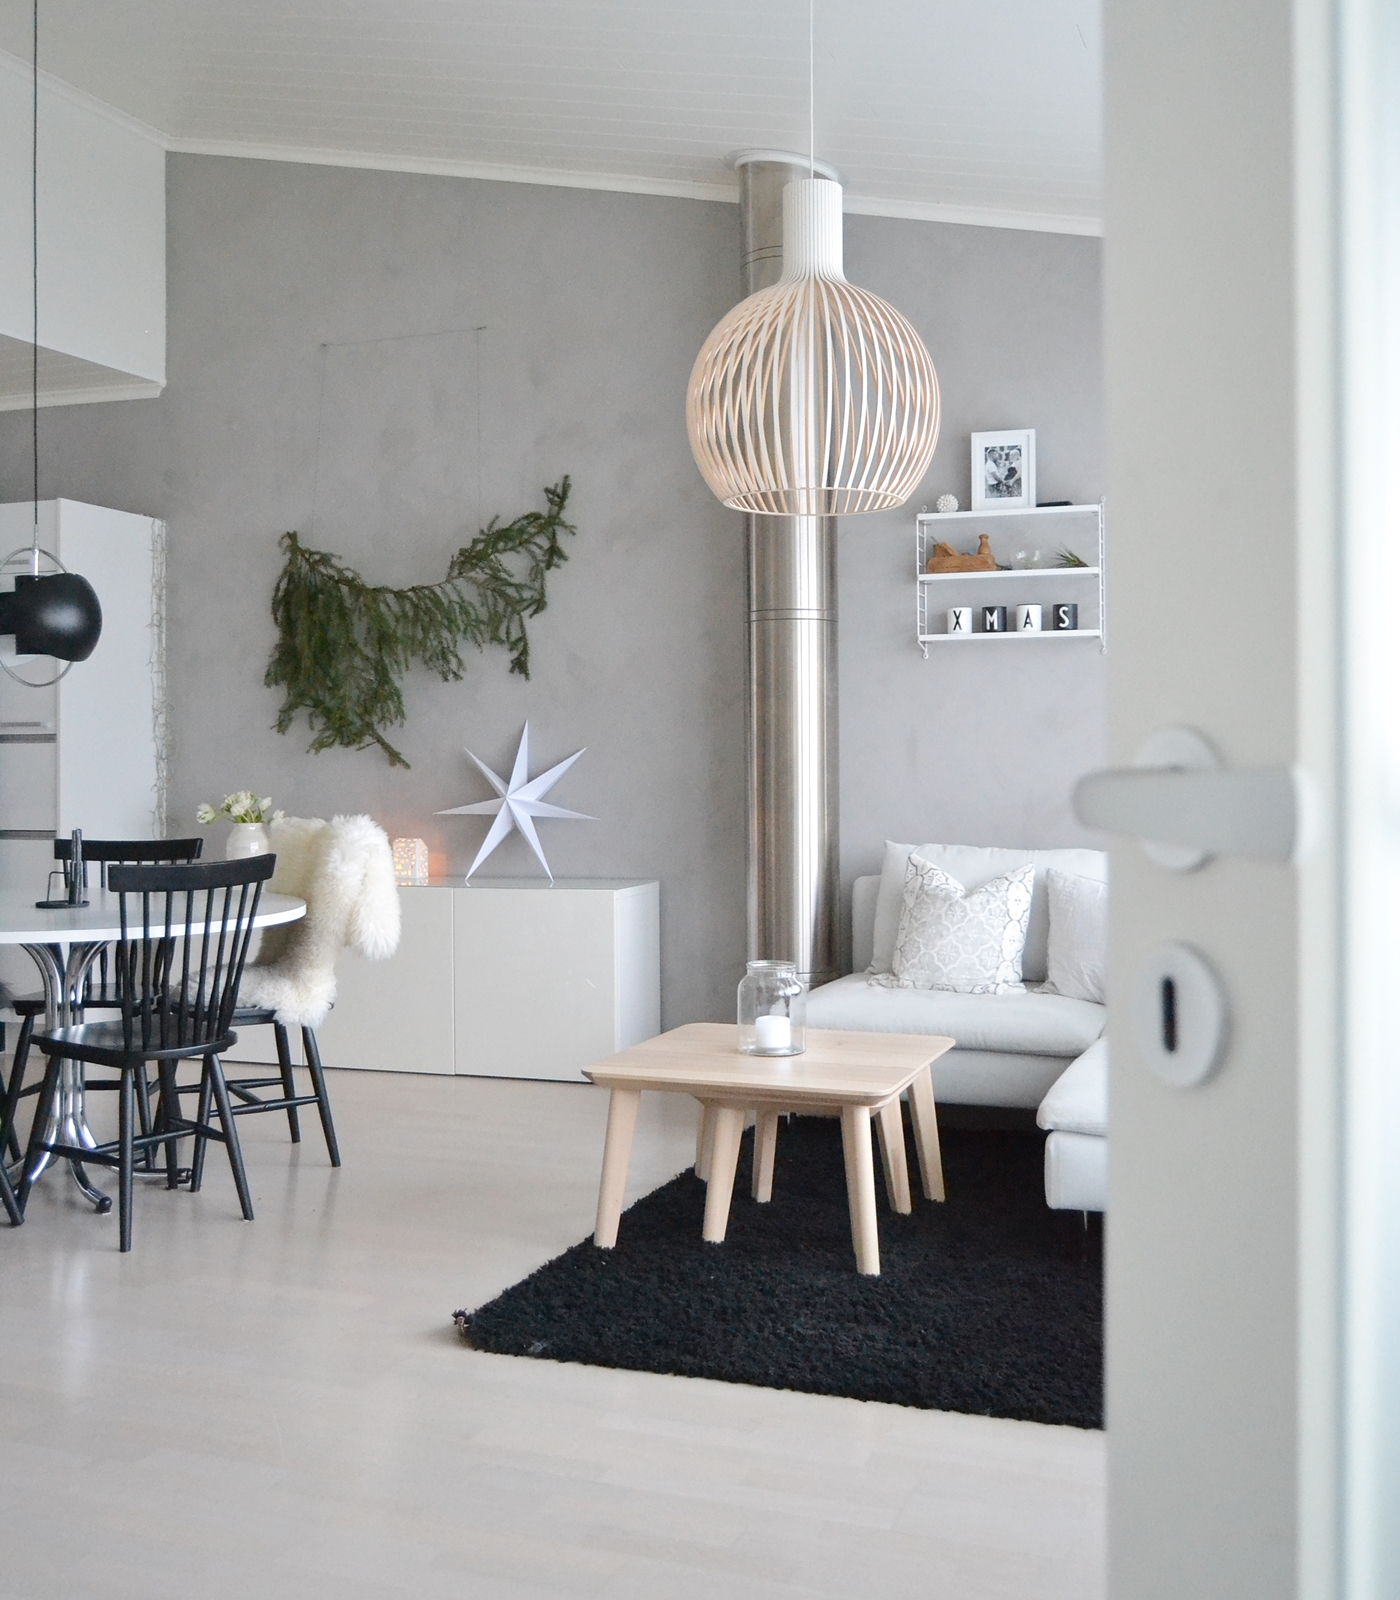 Interior Garden Design Timeless Swedish: Timeless Scandinavian Interiors — Nordique